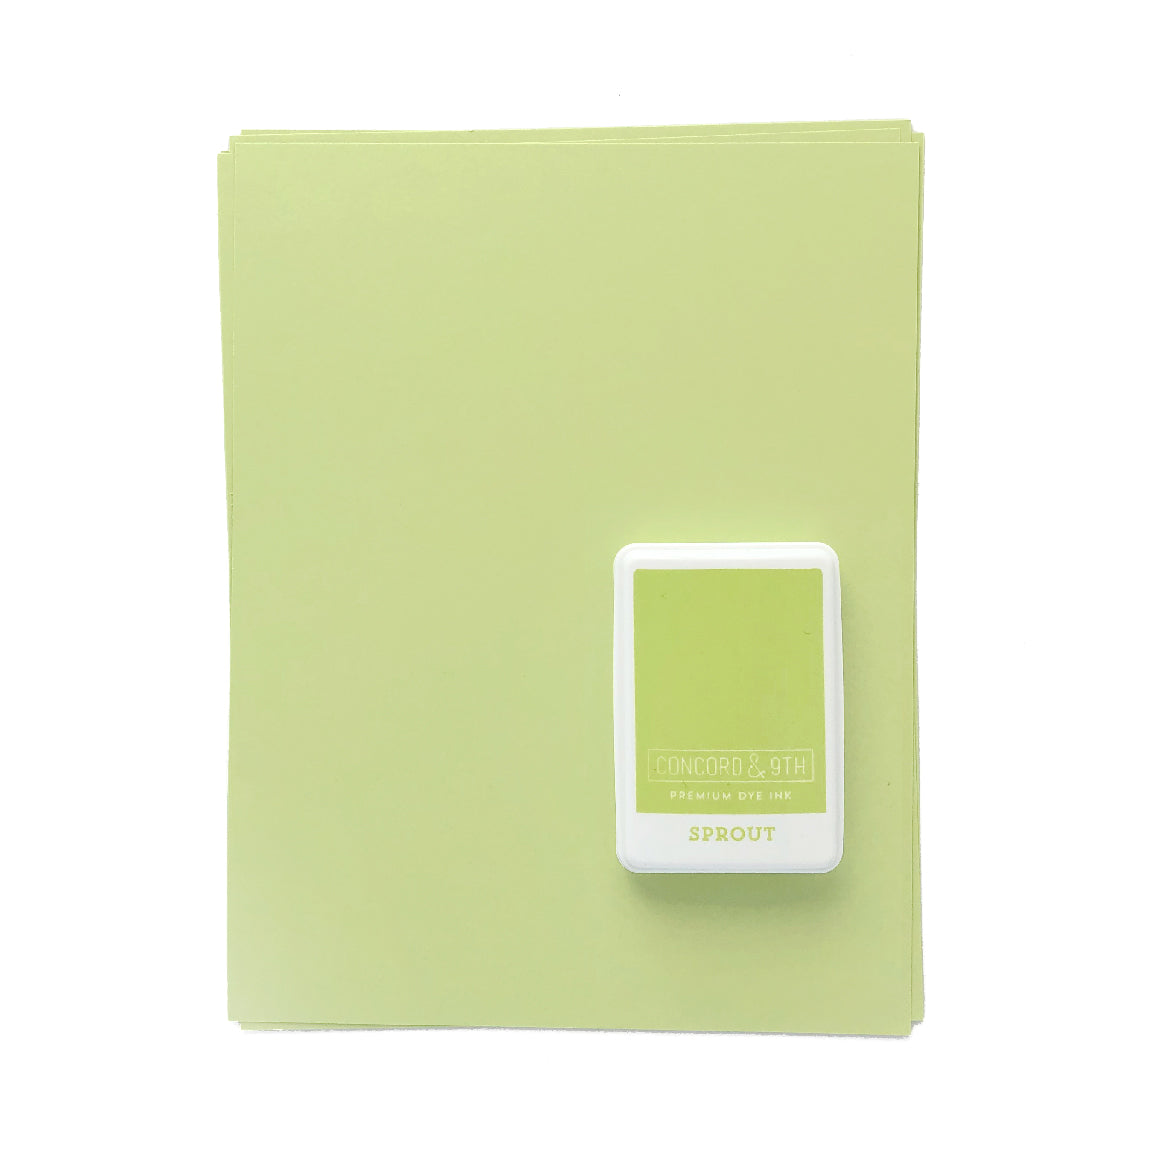 Sprout Ink Pad & Cardstock Bundle